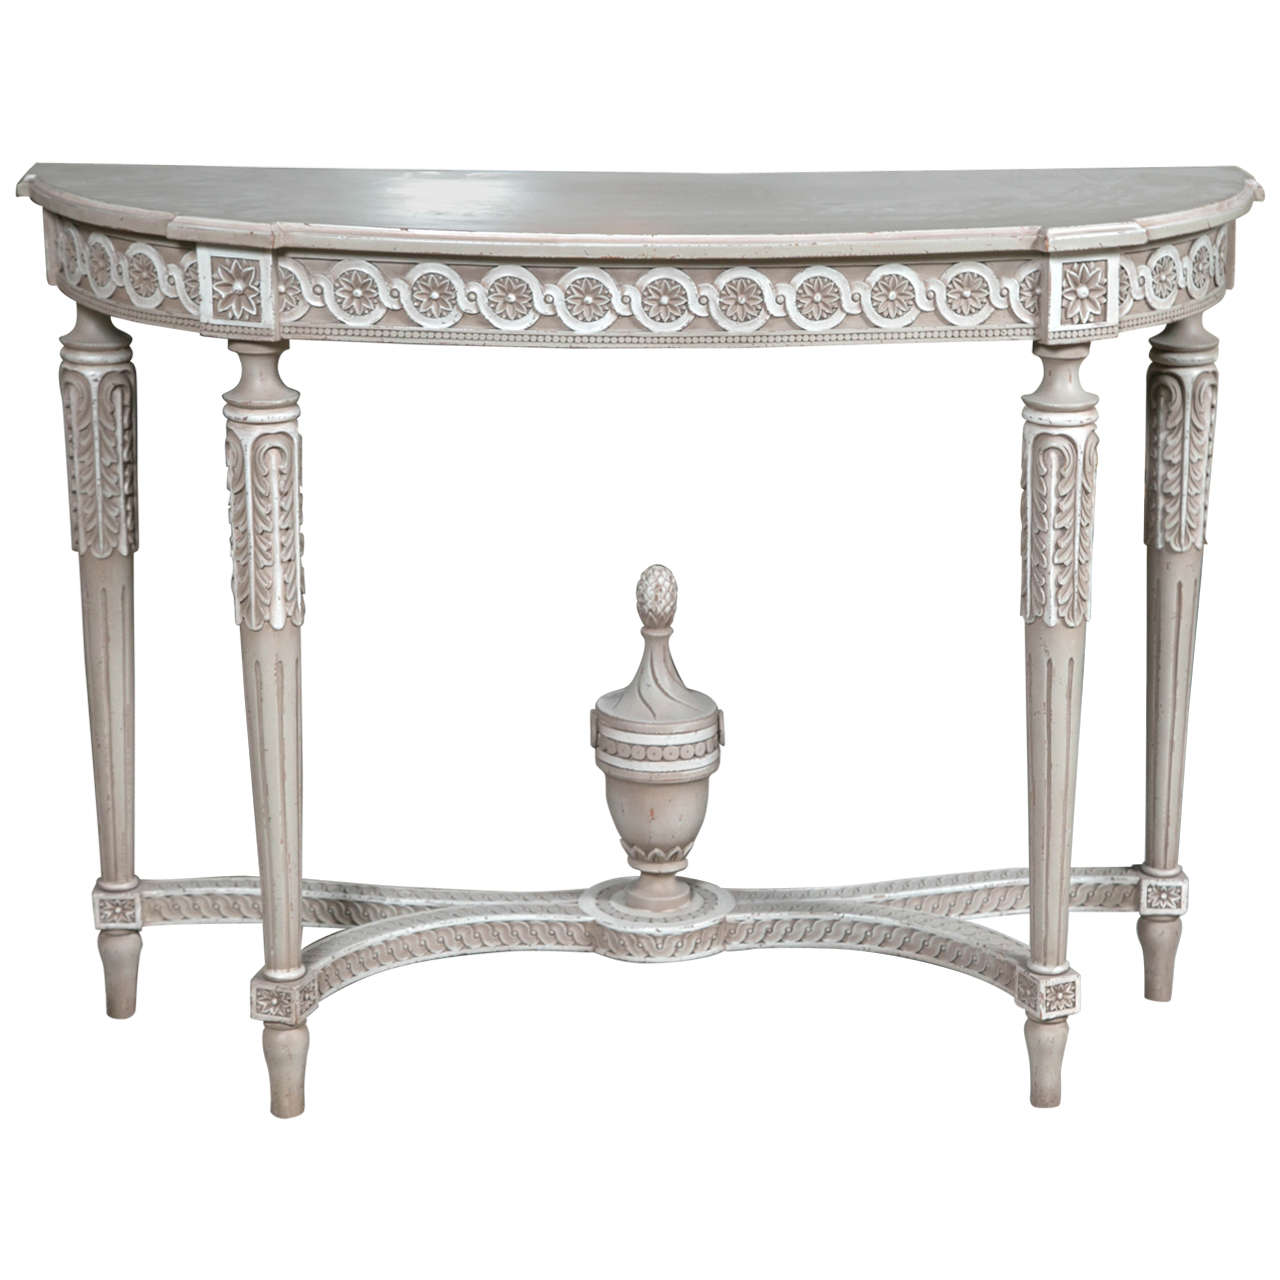 French louis xvi style painted demilune console table at 1stdibs french louis xvi style painted demilune console table 1 geotapseo Gallery